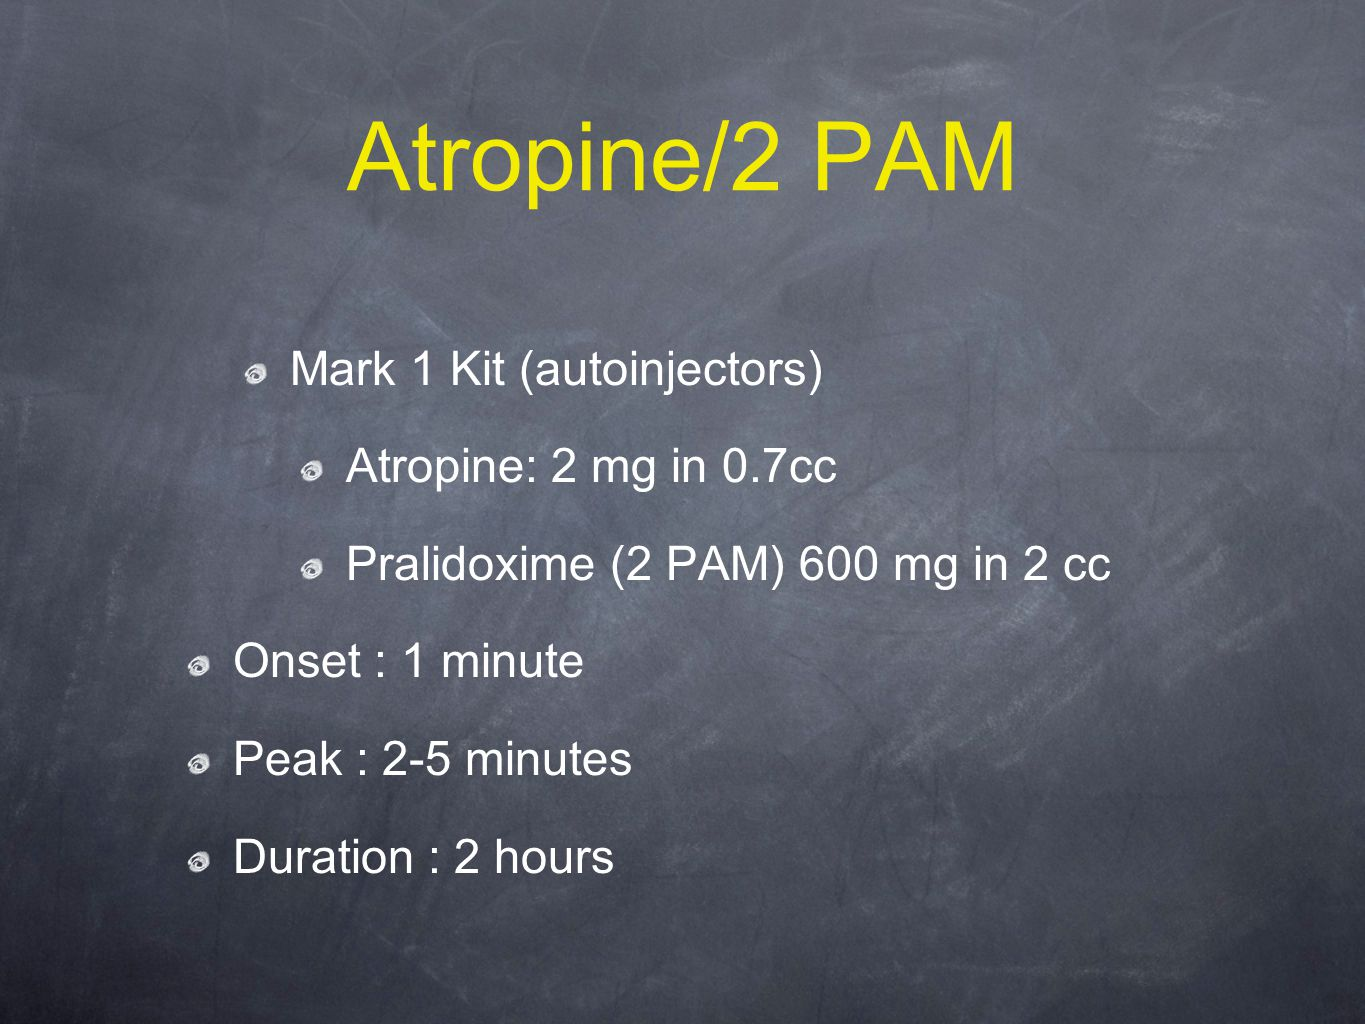 Atropine/2 PAM Mark 1 Kit (autoinjectors) Atropine: 2 mg in 0.7cc Pralidoxime (2 PAM) 600 mg in 2 cc Onset : 1 minute Peak : 2-5 minutes Duration : 2 hours